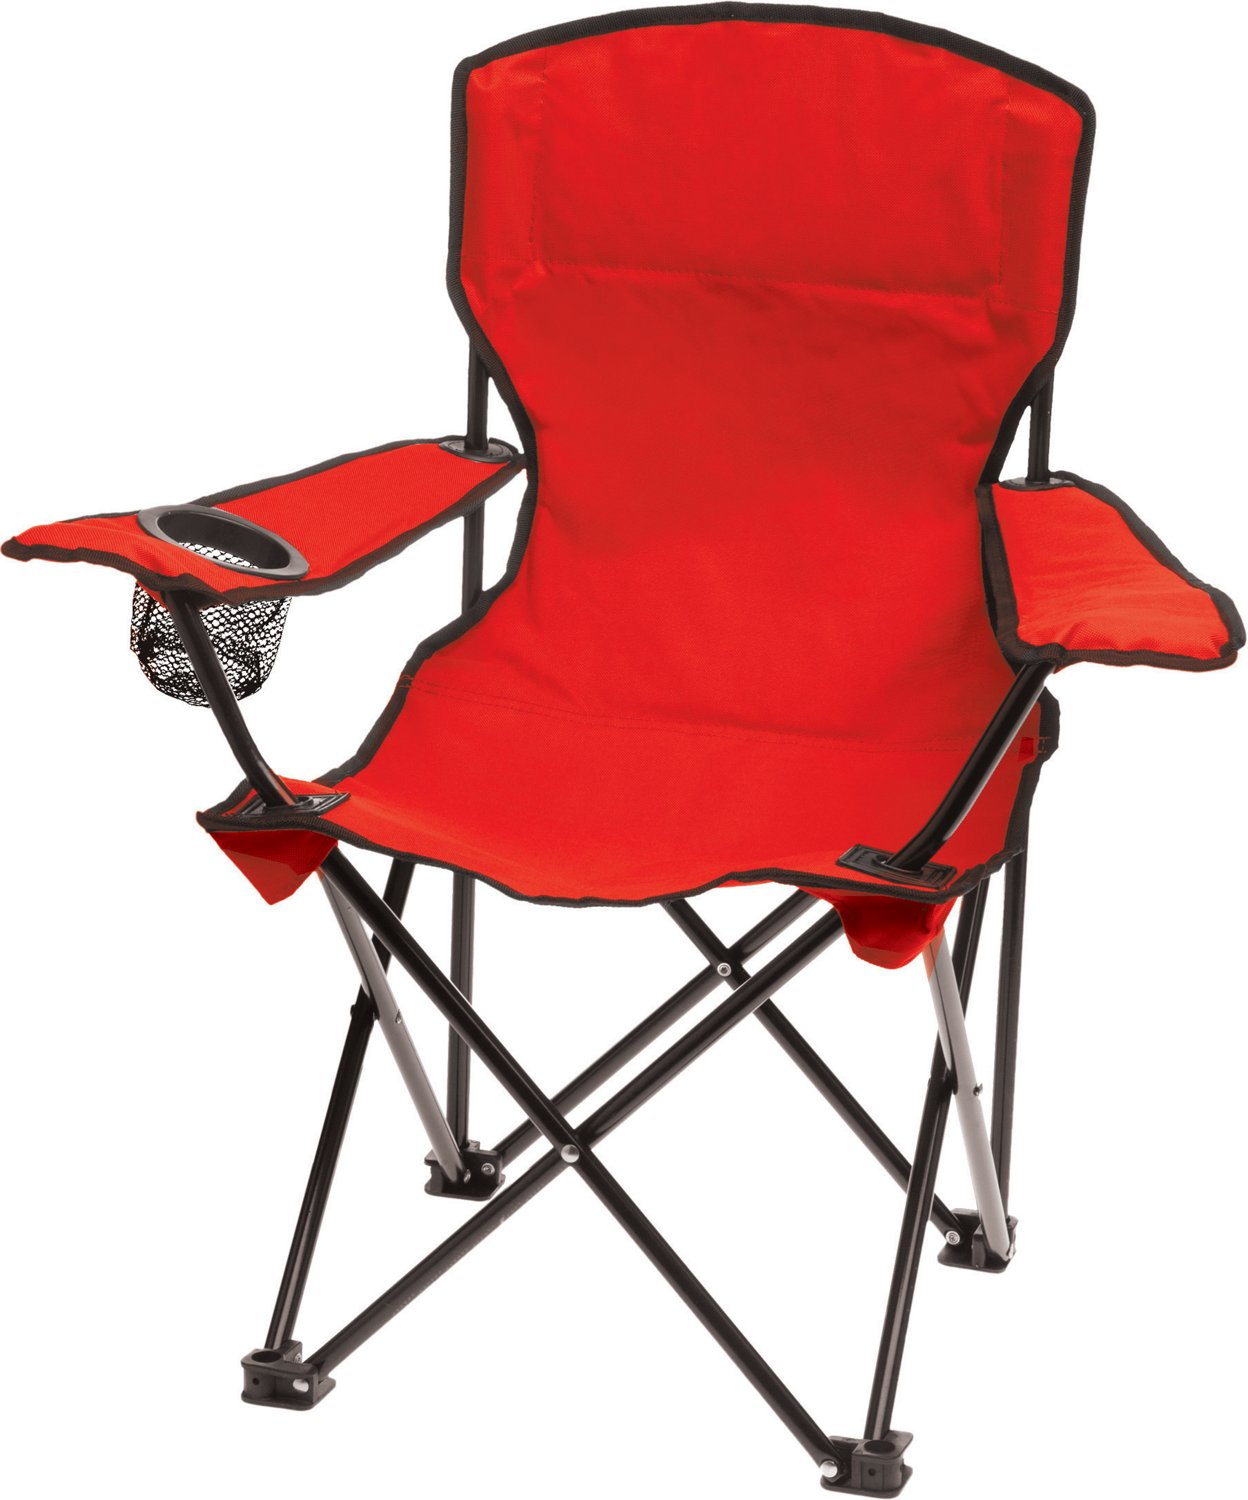 academy sports folding chairs beach chair with footrest plastic wooden fabric and metal